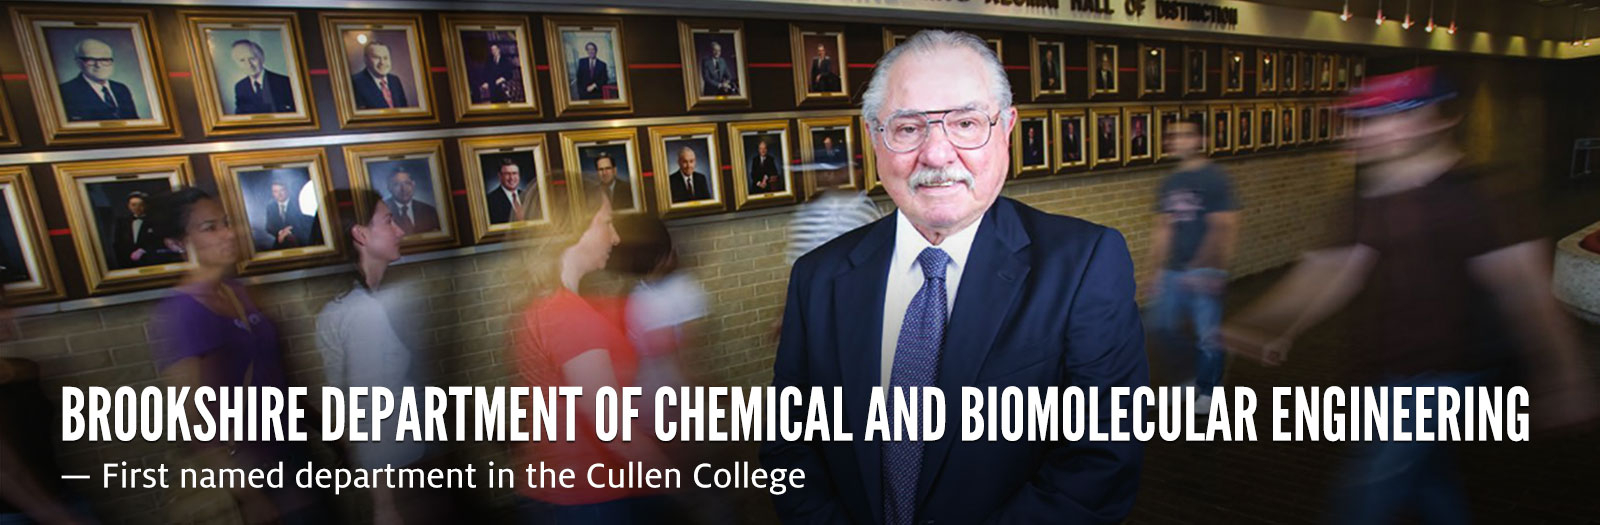 Brookshire Department of Chemical and Biomolecular Engineering — First named department in the Cullen College